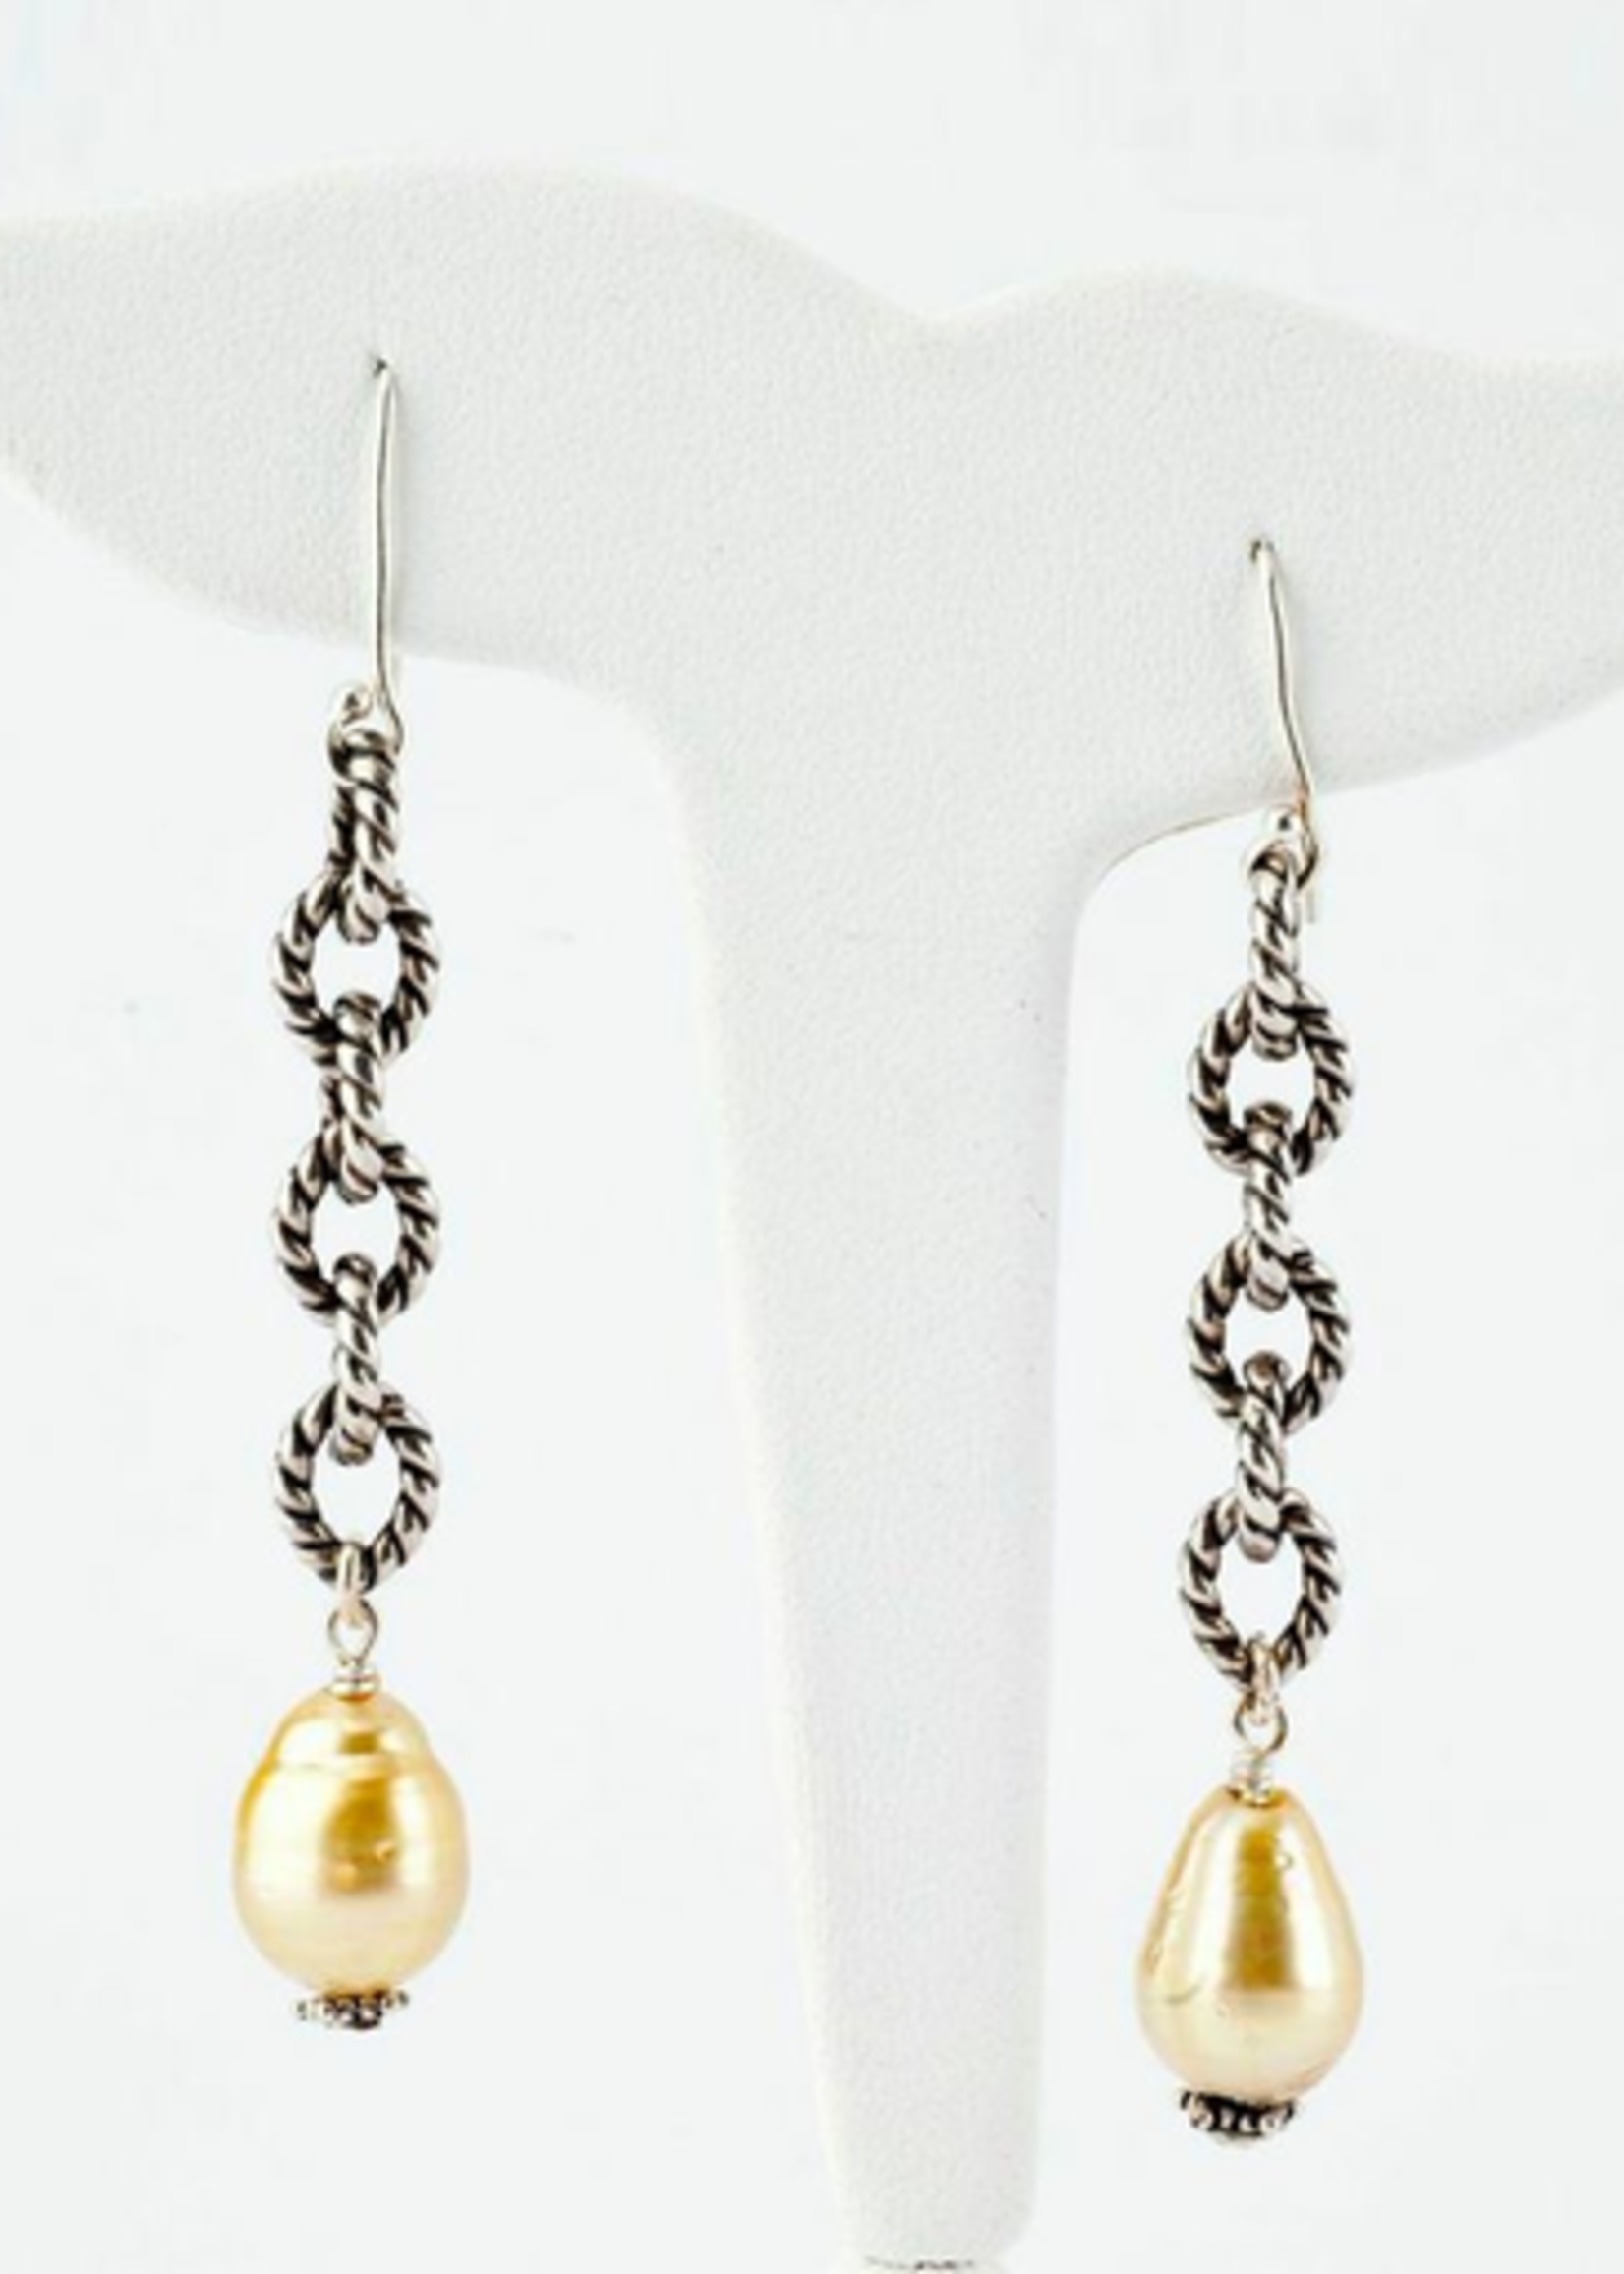 Mina Danielle Sterling Silver Link Chain with Hanging Yellow South Sea Pearls